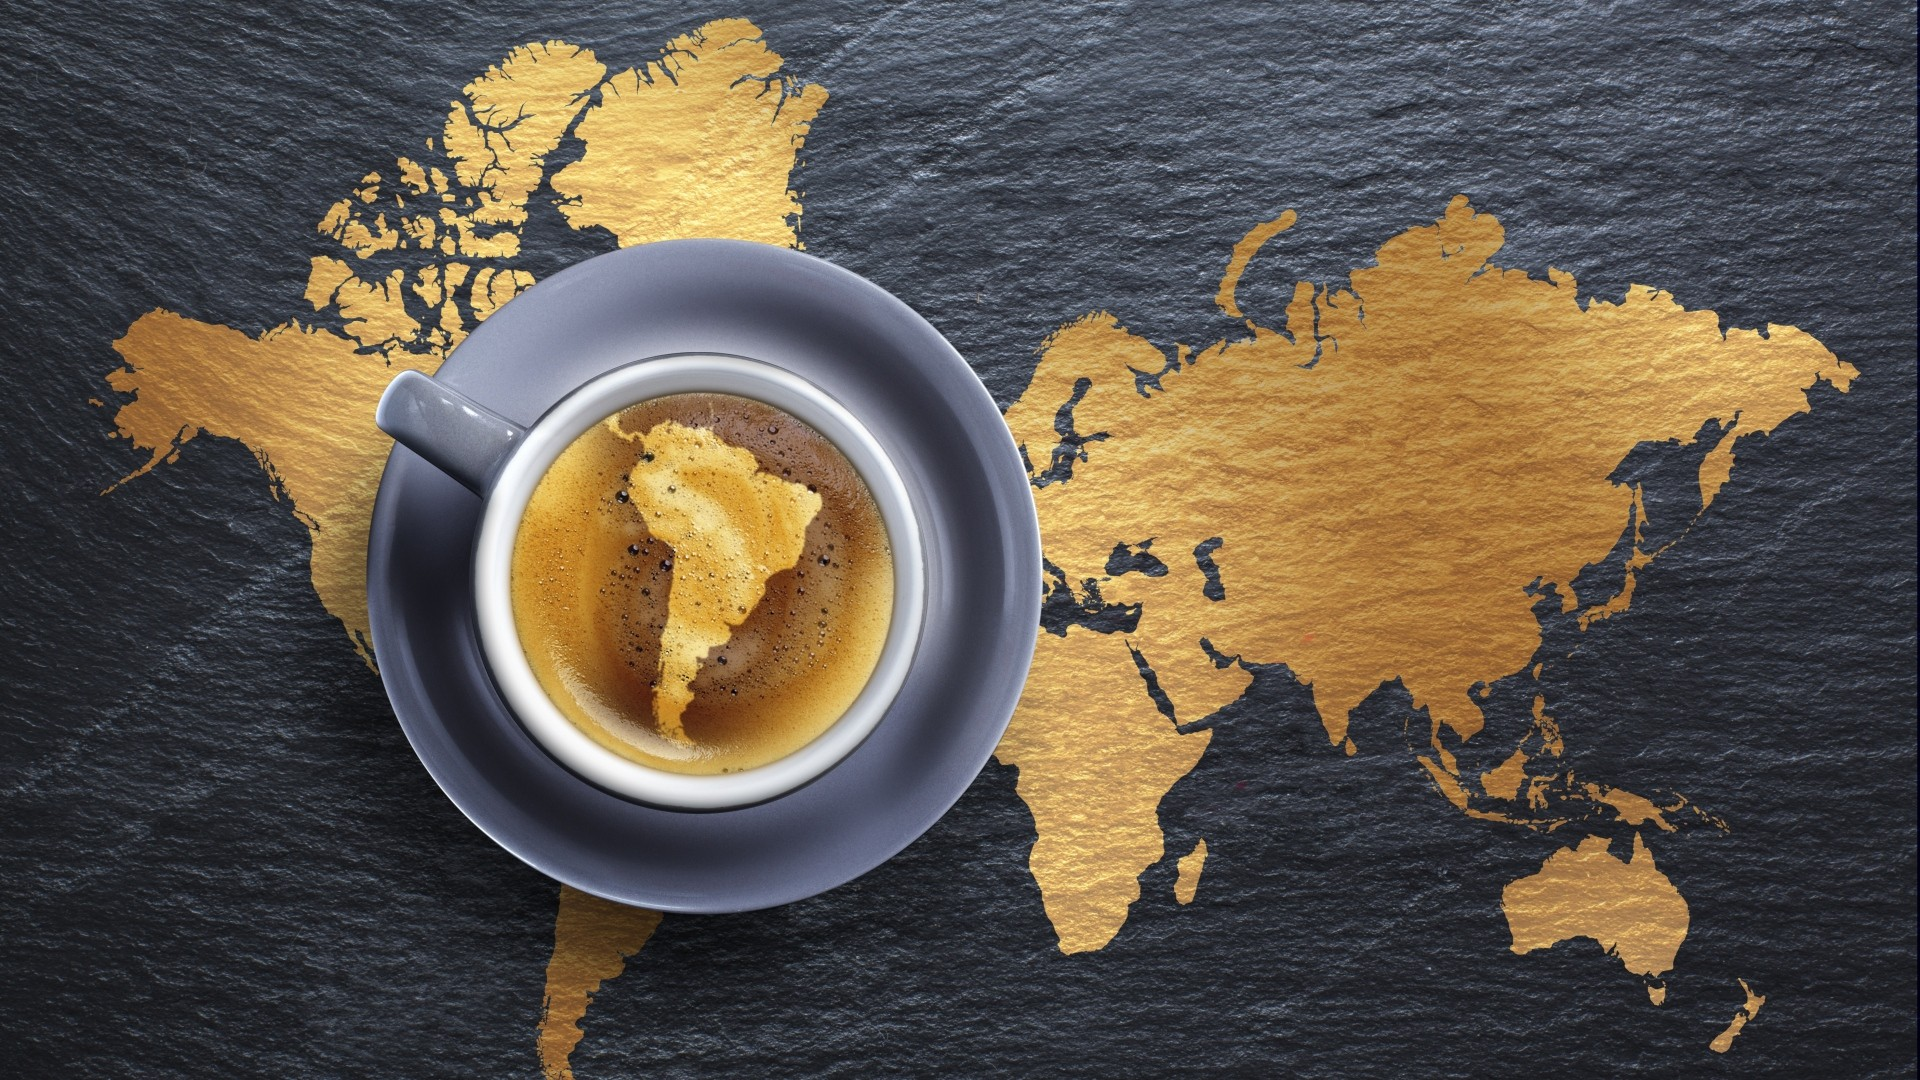 Coffee map art hd artist 4k wallpapers images backgrounds coffee map art gumiabroncs Image collections